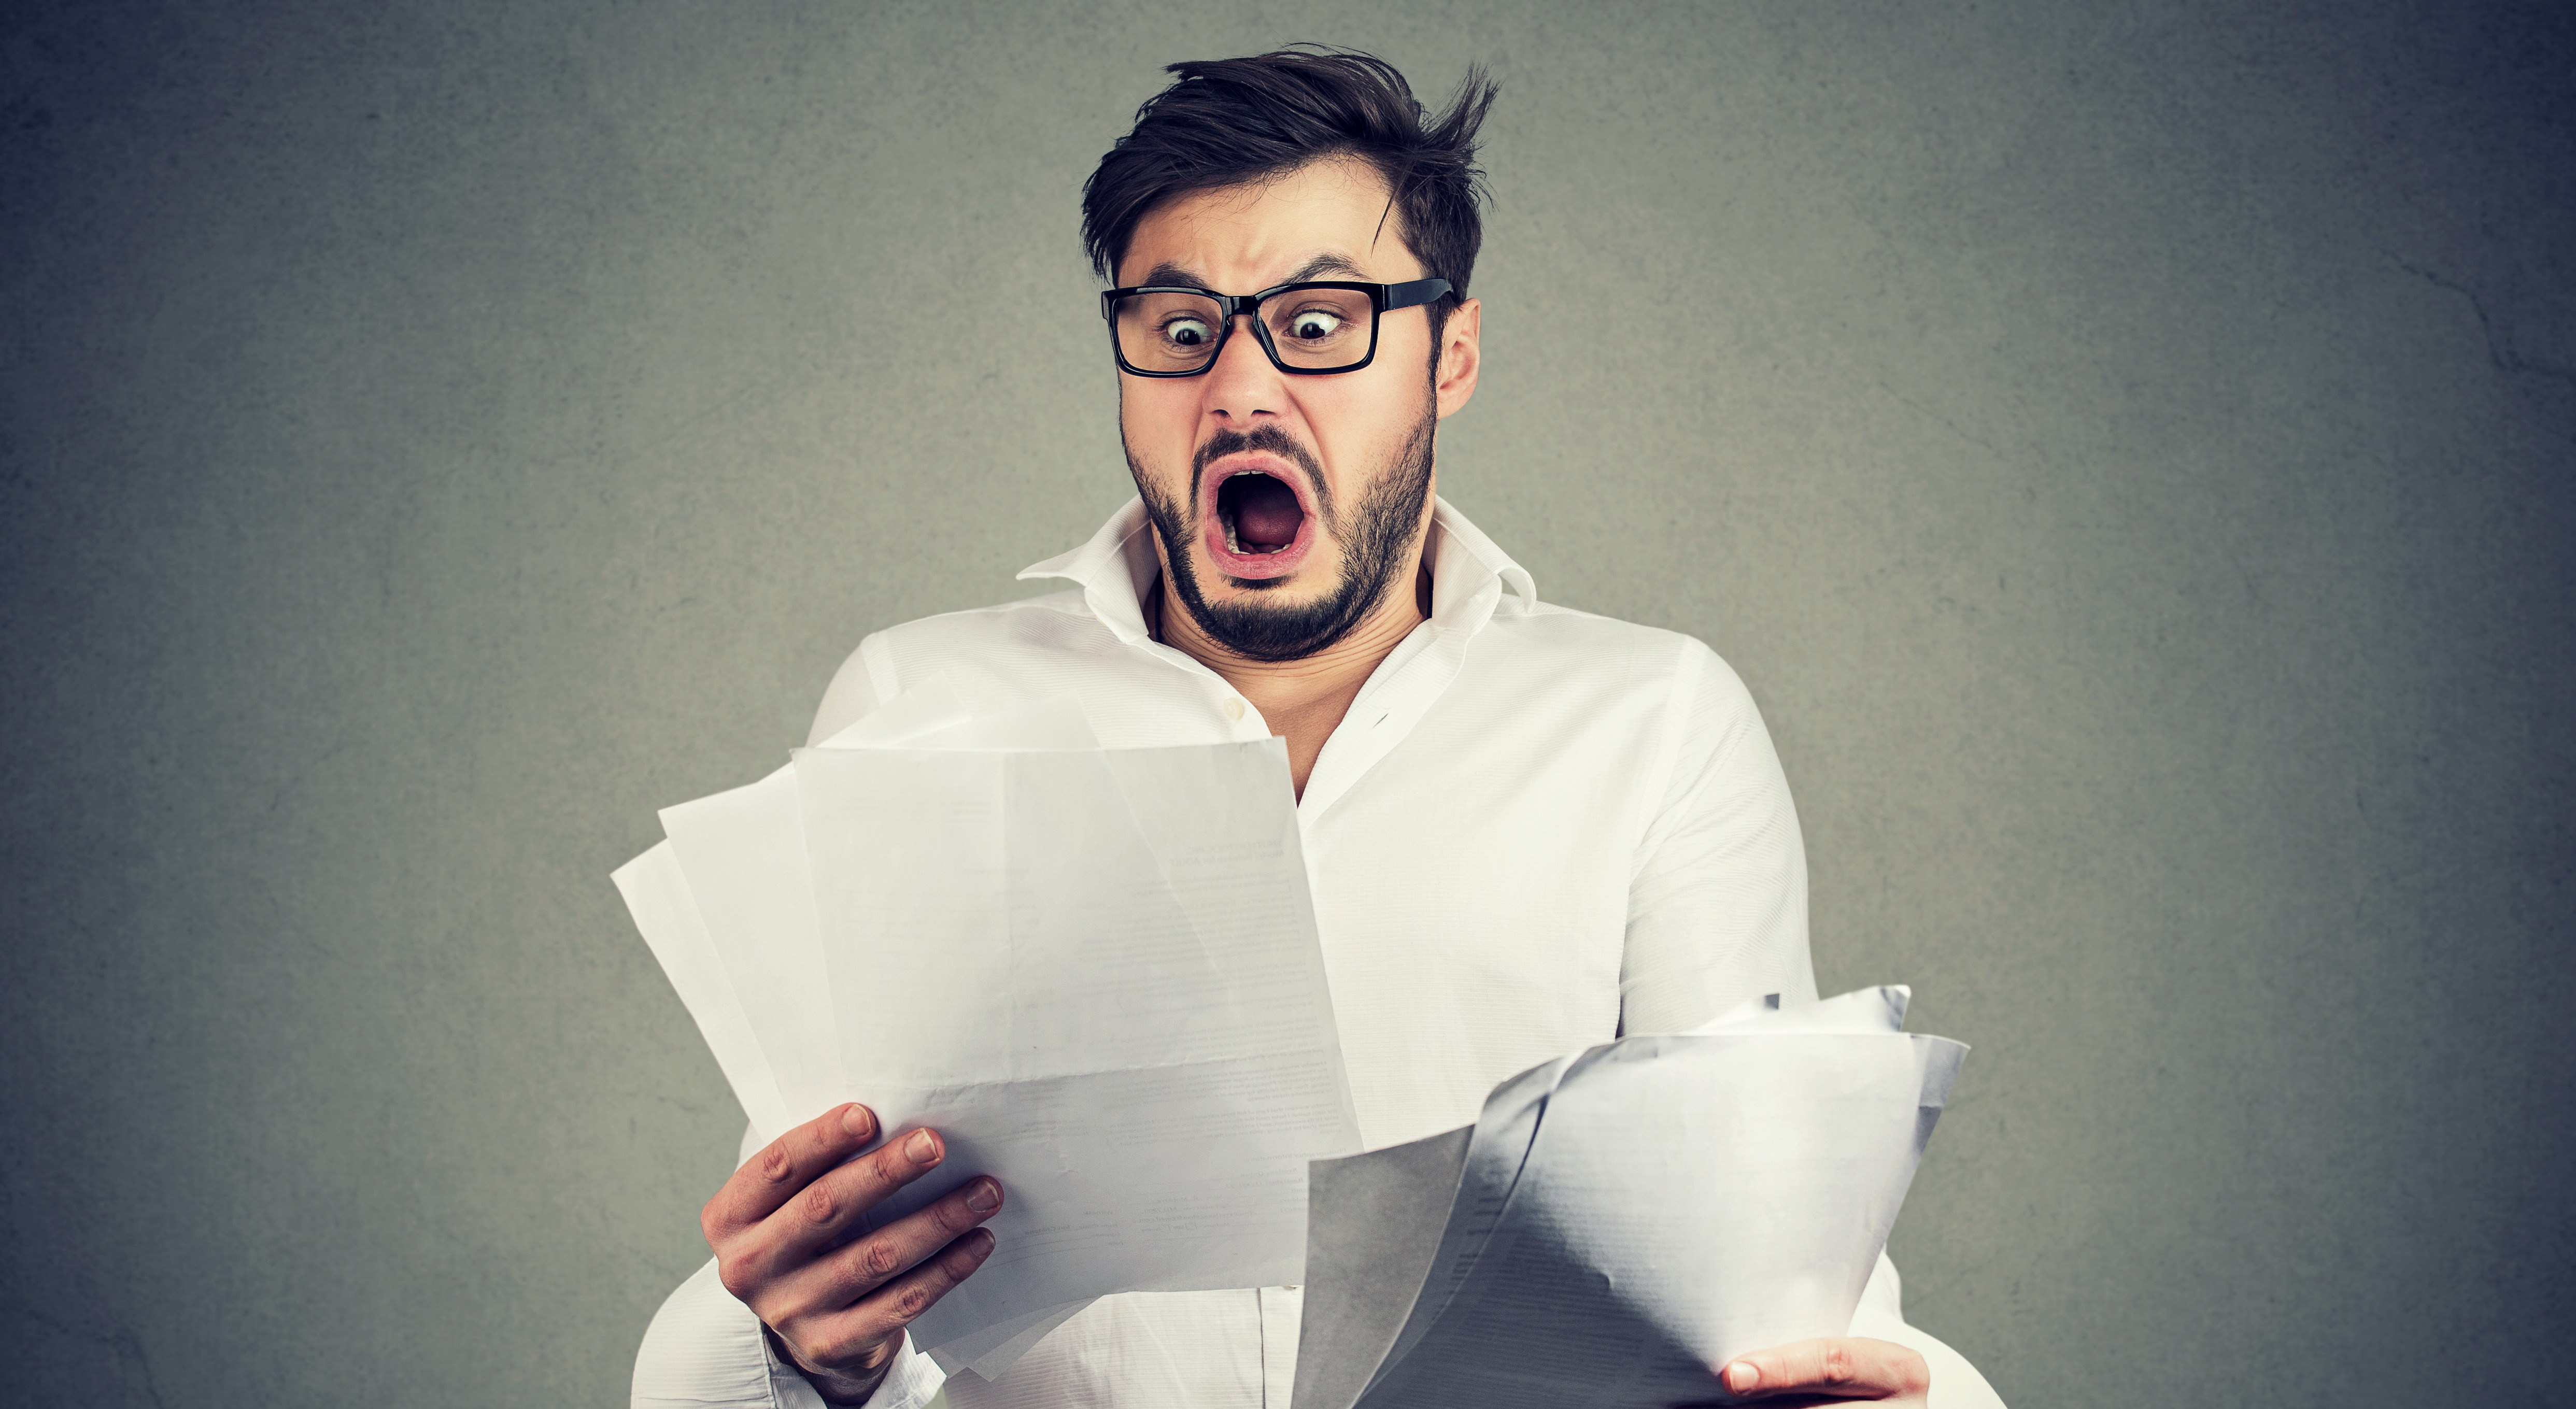 Shocked business man looking through papers with bills